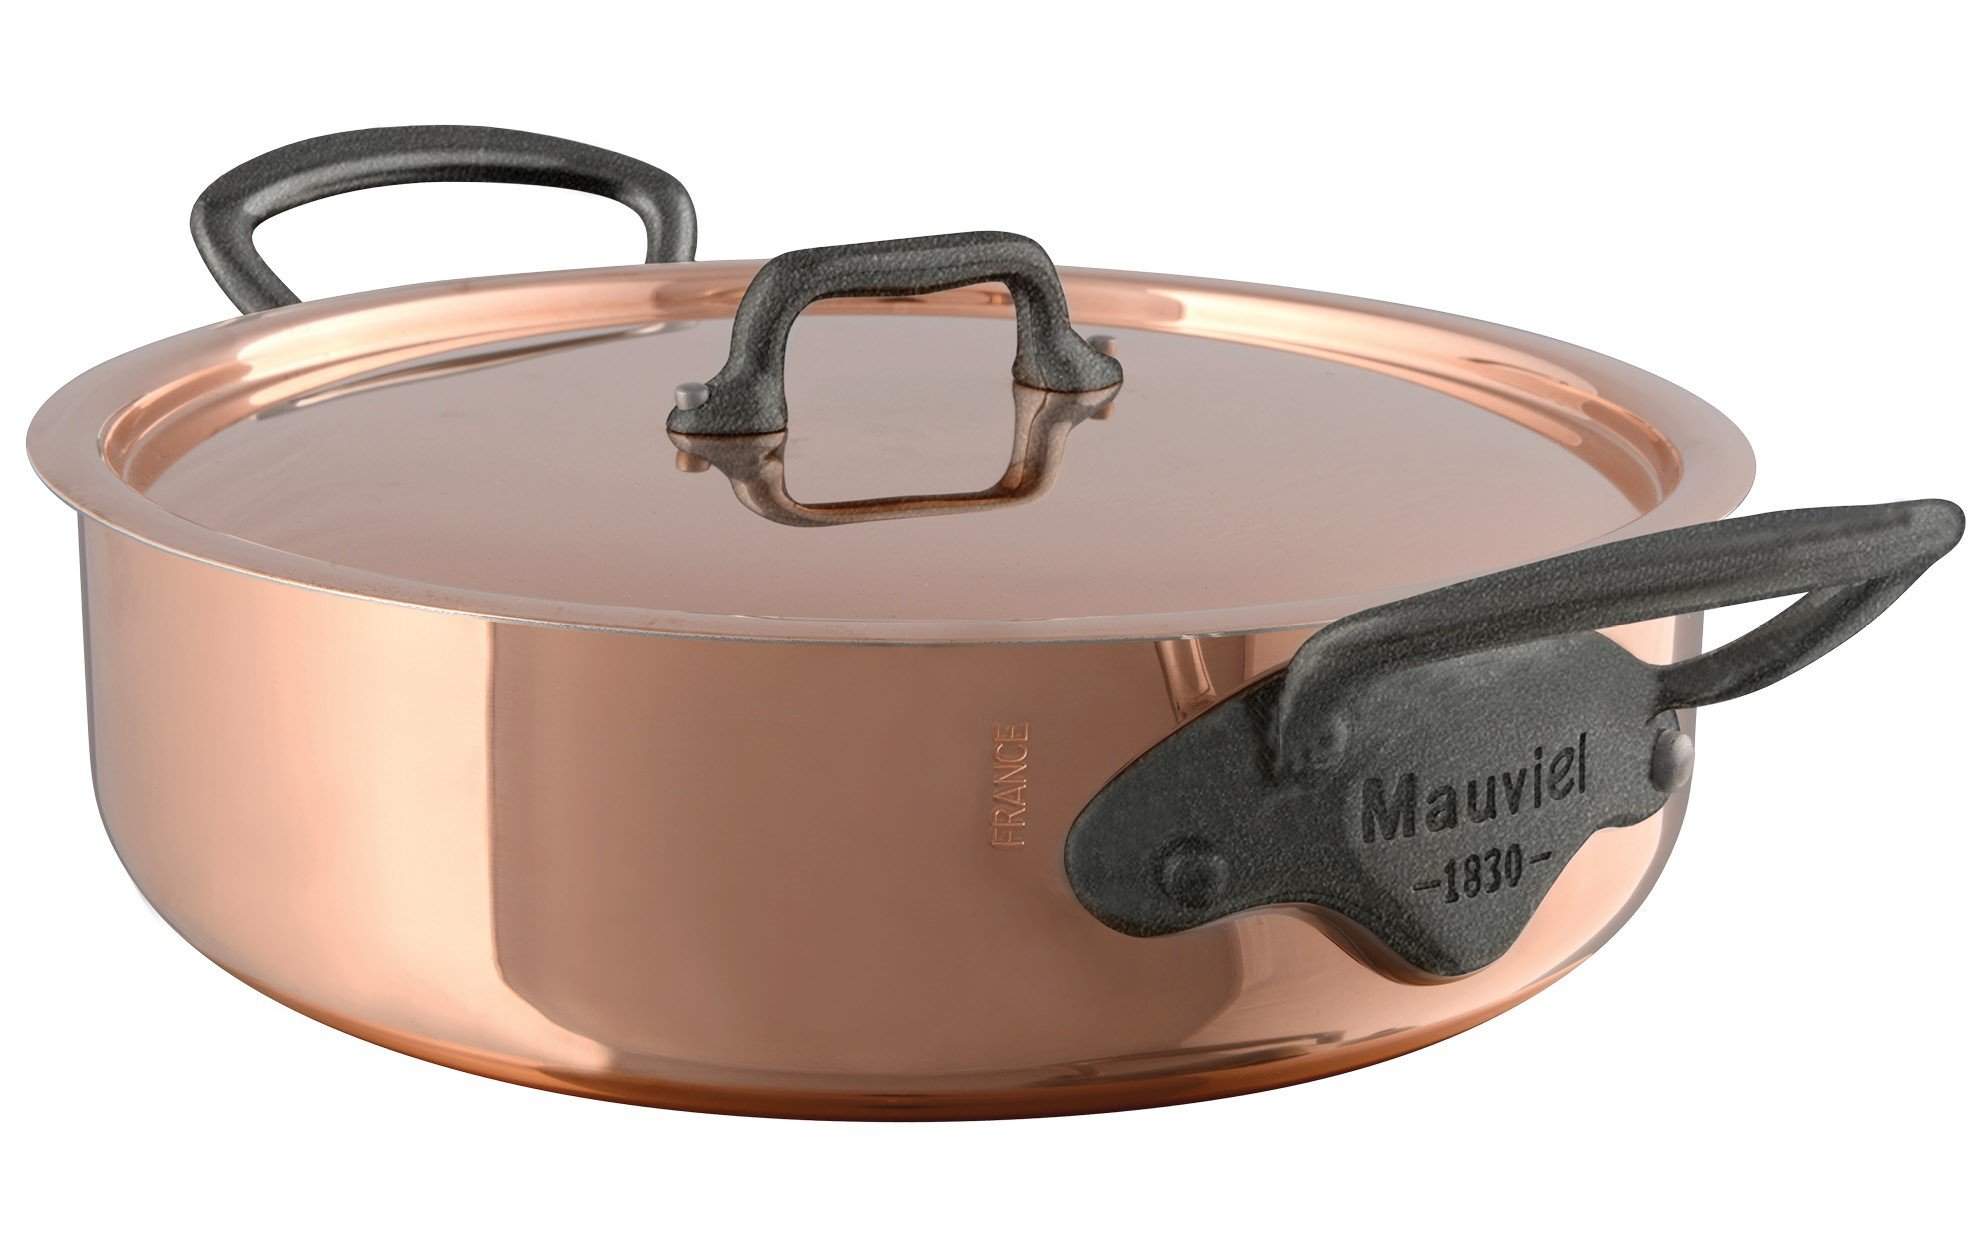 Mauviel M'Heritage M150C 6480.29 Copper Rondeau/Covered Casserole with Lid. 5.4L/5.7 quart 28cm/11'' with Cast Stainless Steel Iron Eletroplated  Handle